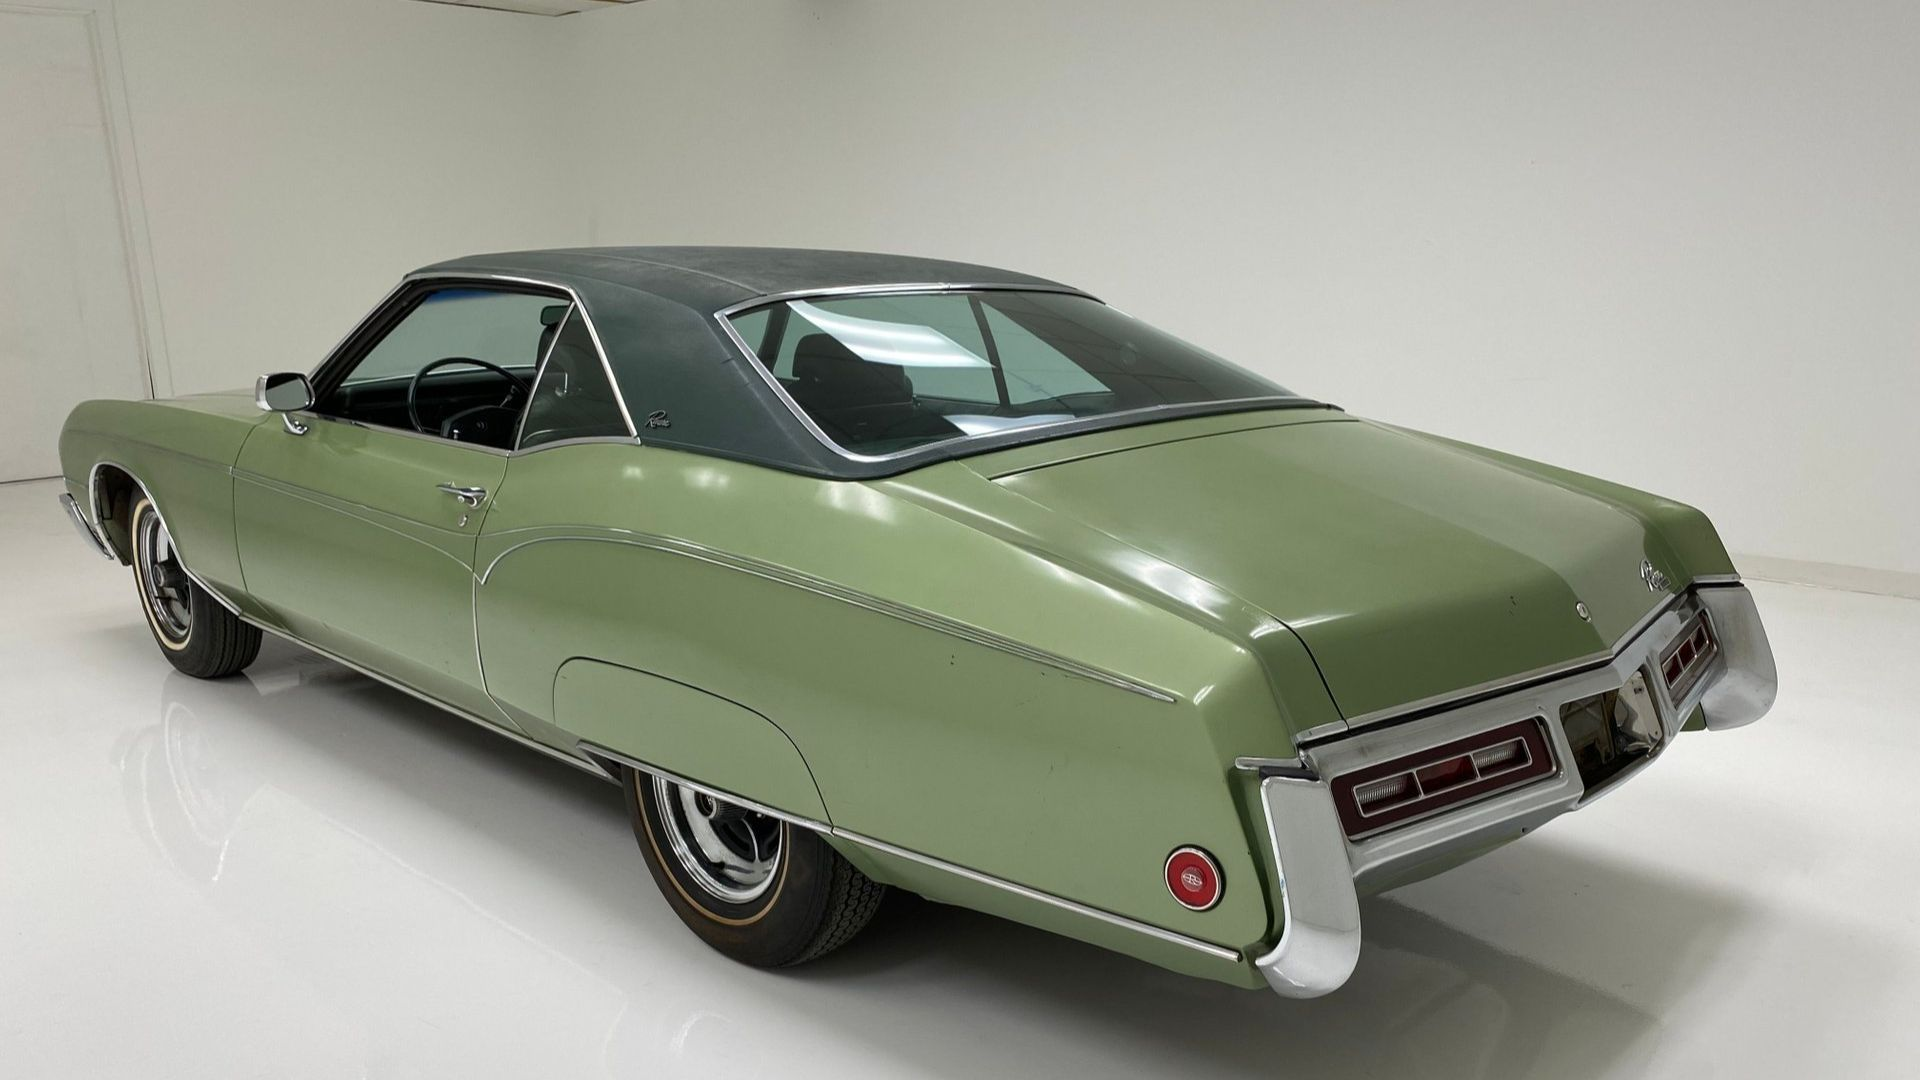 Original 1970 Buick Riviera Provides An Affordable Option